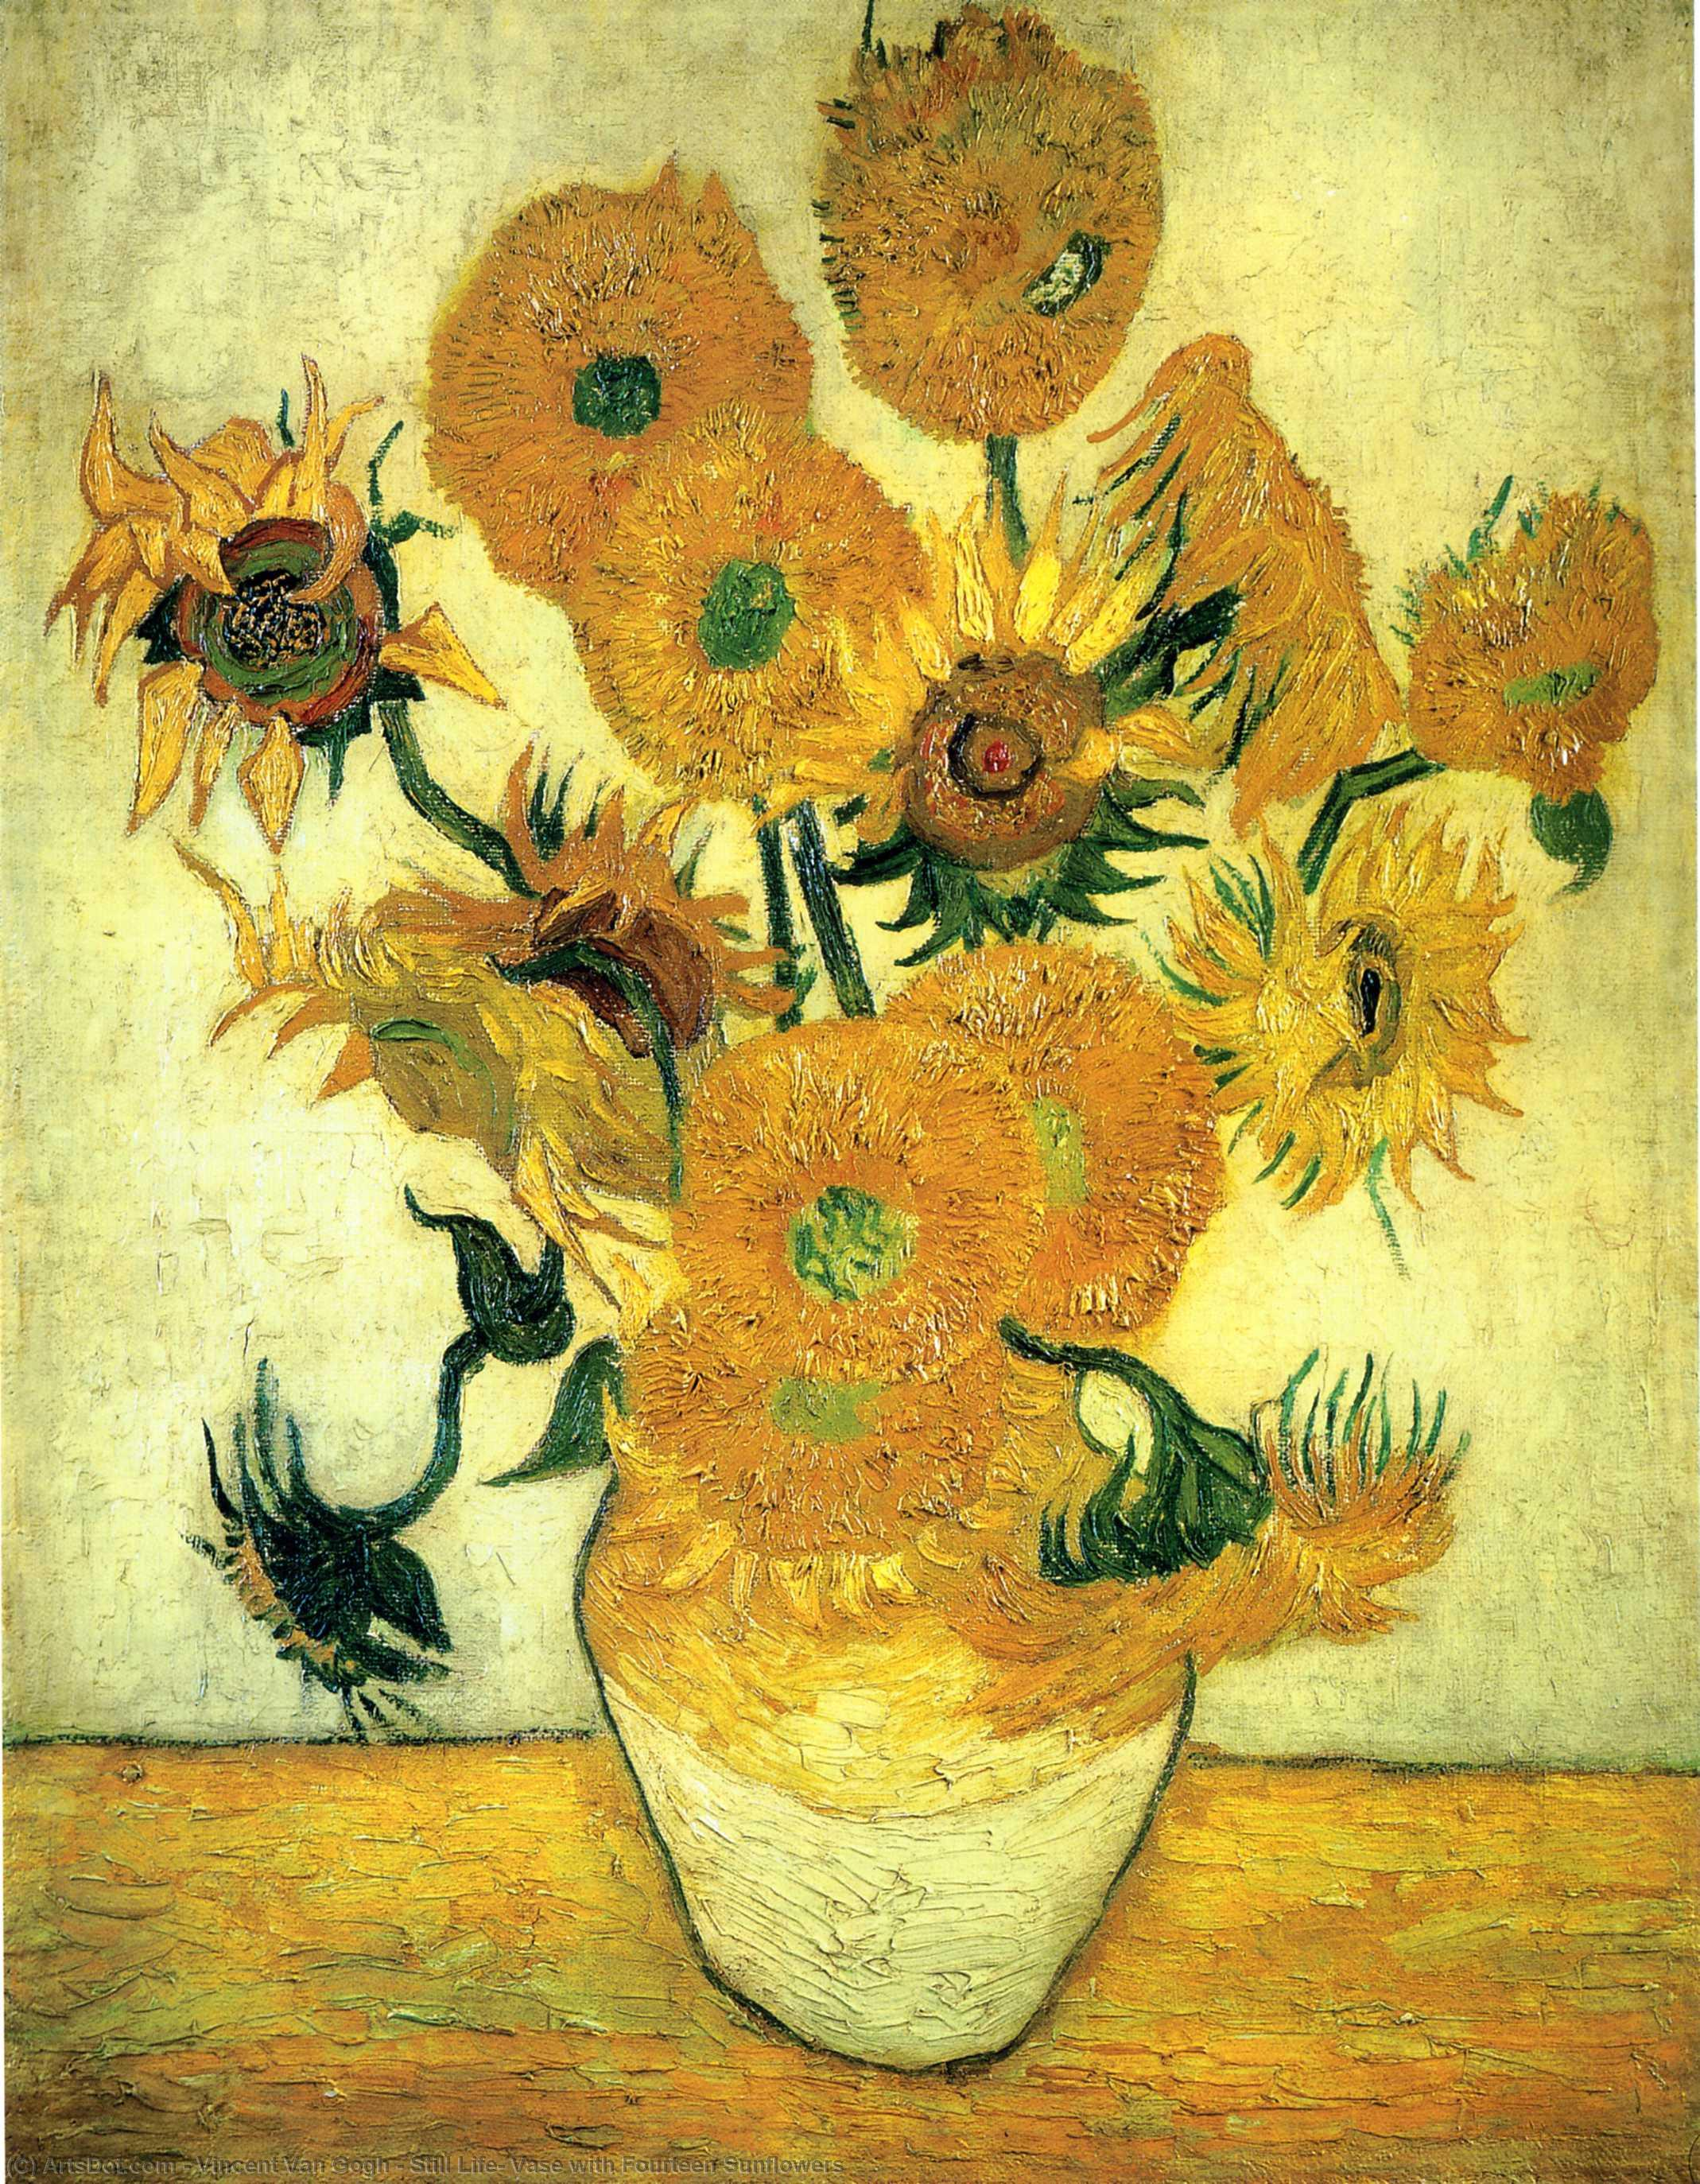 Wikioo.org - The Encyclopedia of Fine Arts - Painting, Artwork by Vincent Van Gogh - Still Life: Vase with Fourteen Sunflowers